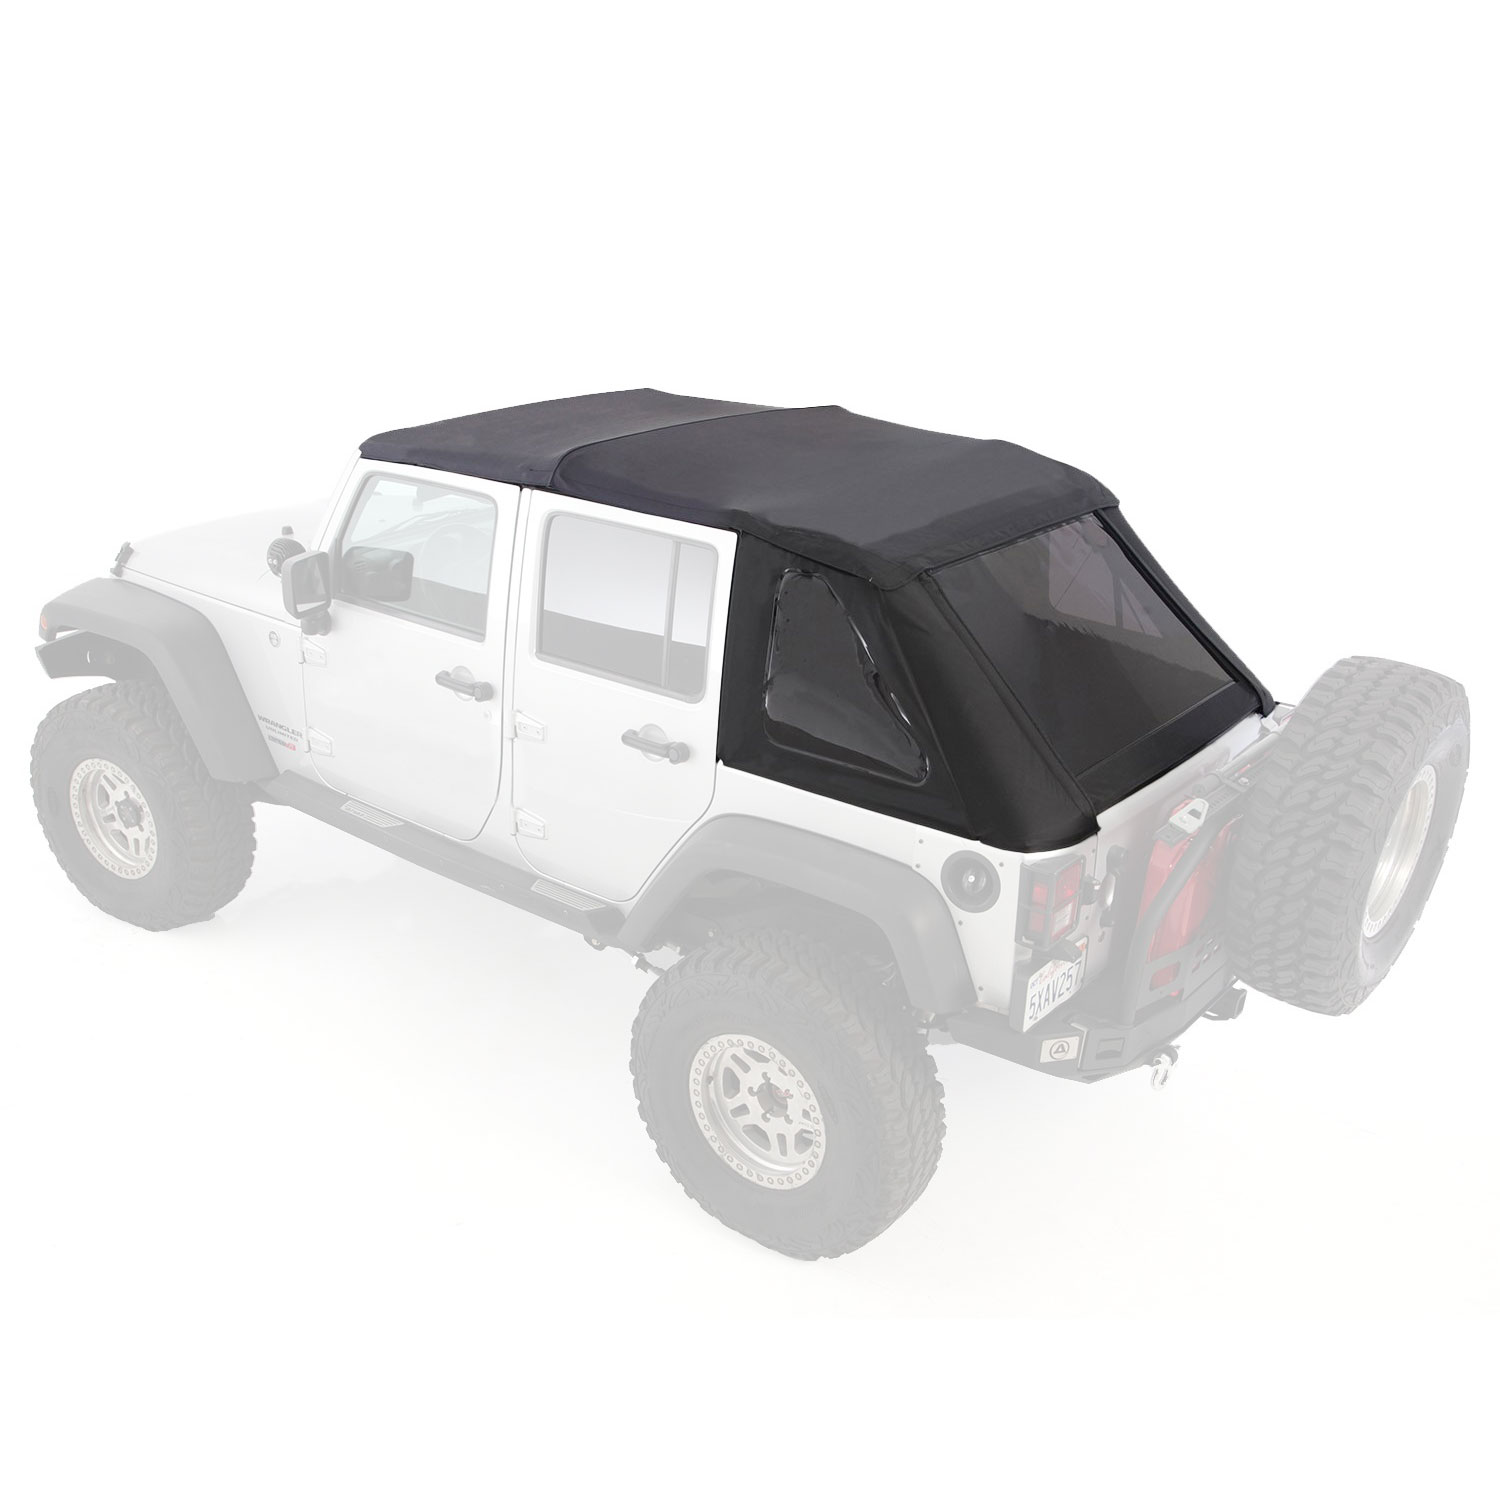 Smittybilt Bowless Combo Soft Top Kit w/ Tinted Windows for 07- 17 ...